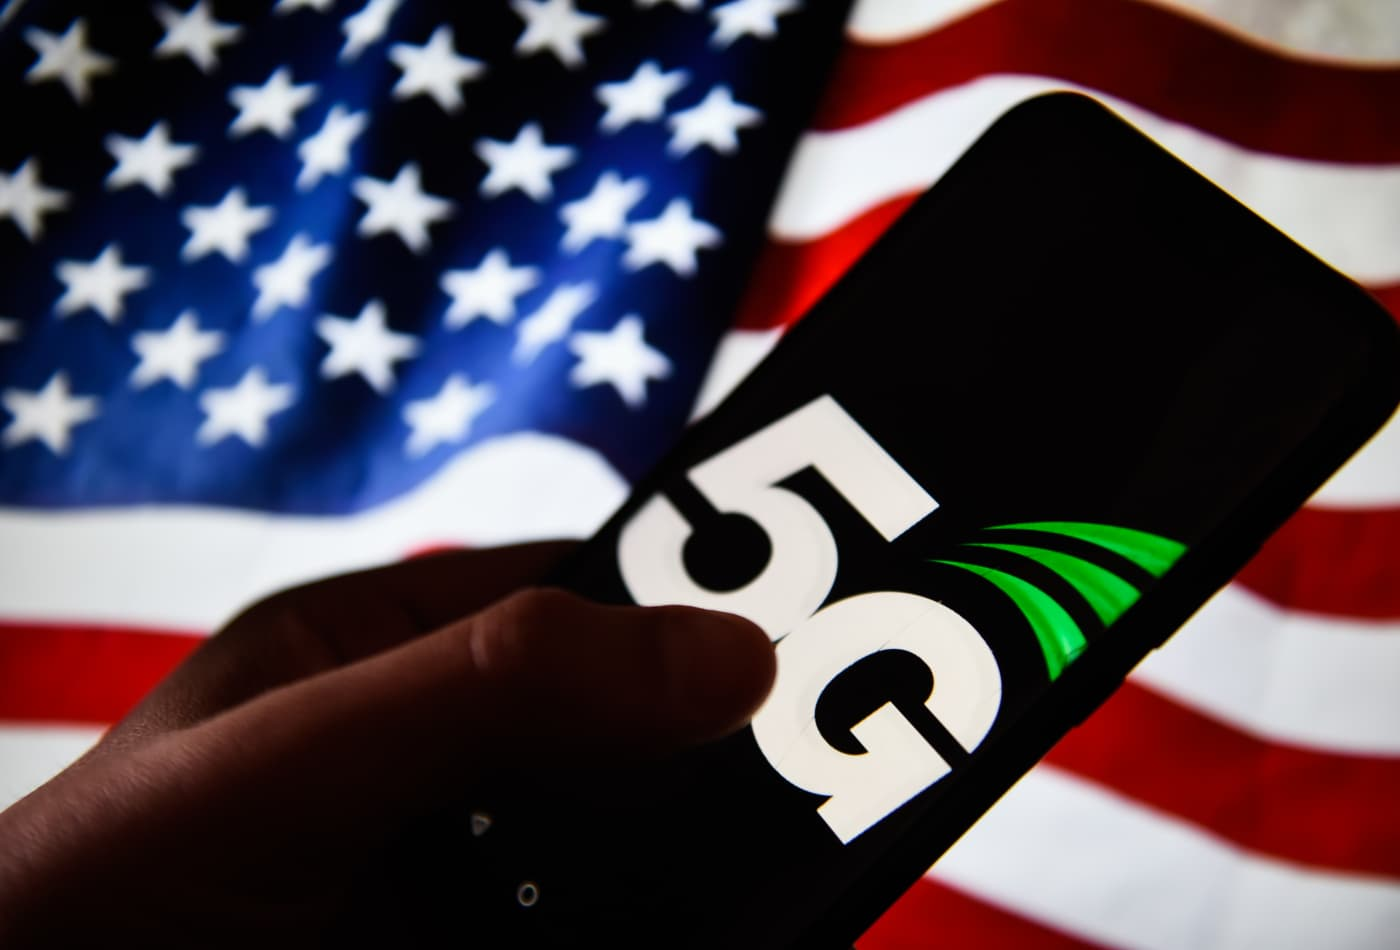 Buy these 5G stock plays if they take a dip from US-China trade news, Jim Cramer says